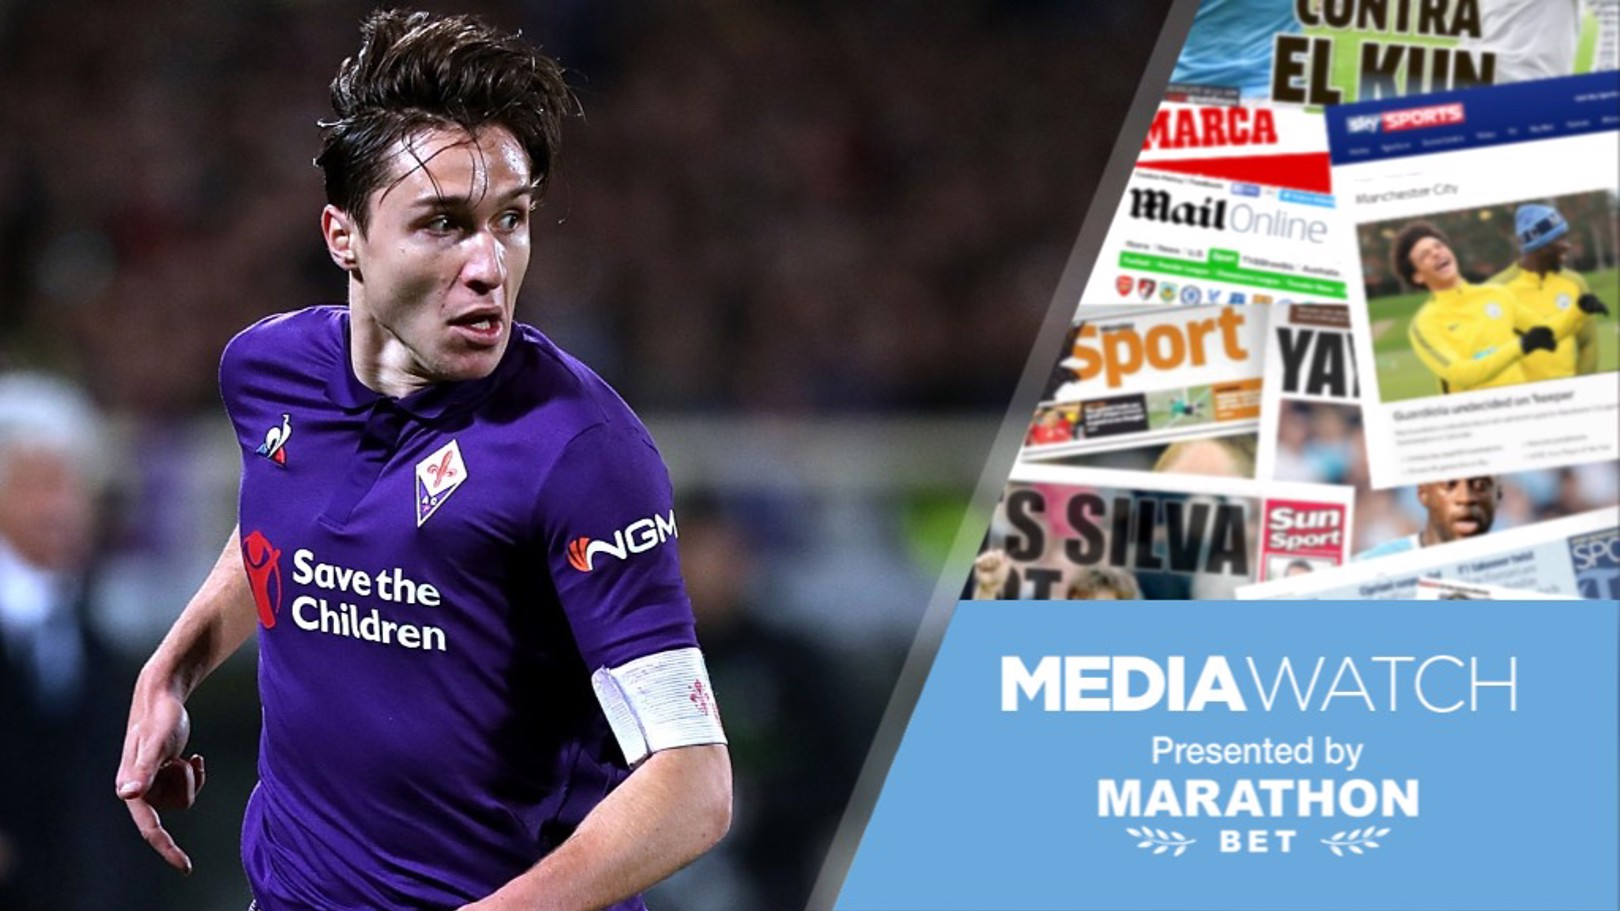 TARGET?: Fiorentina's Federico Chiesa has allegedly attracted plenty of interest